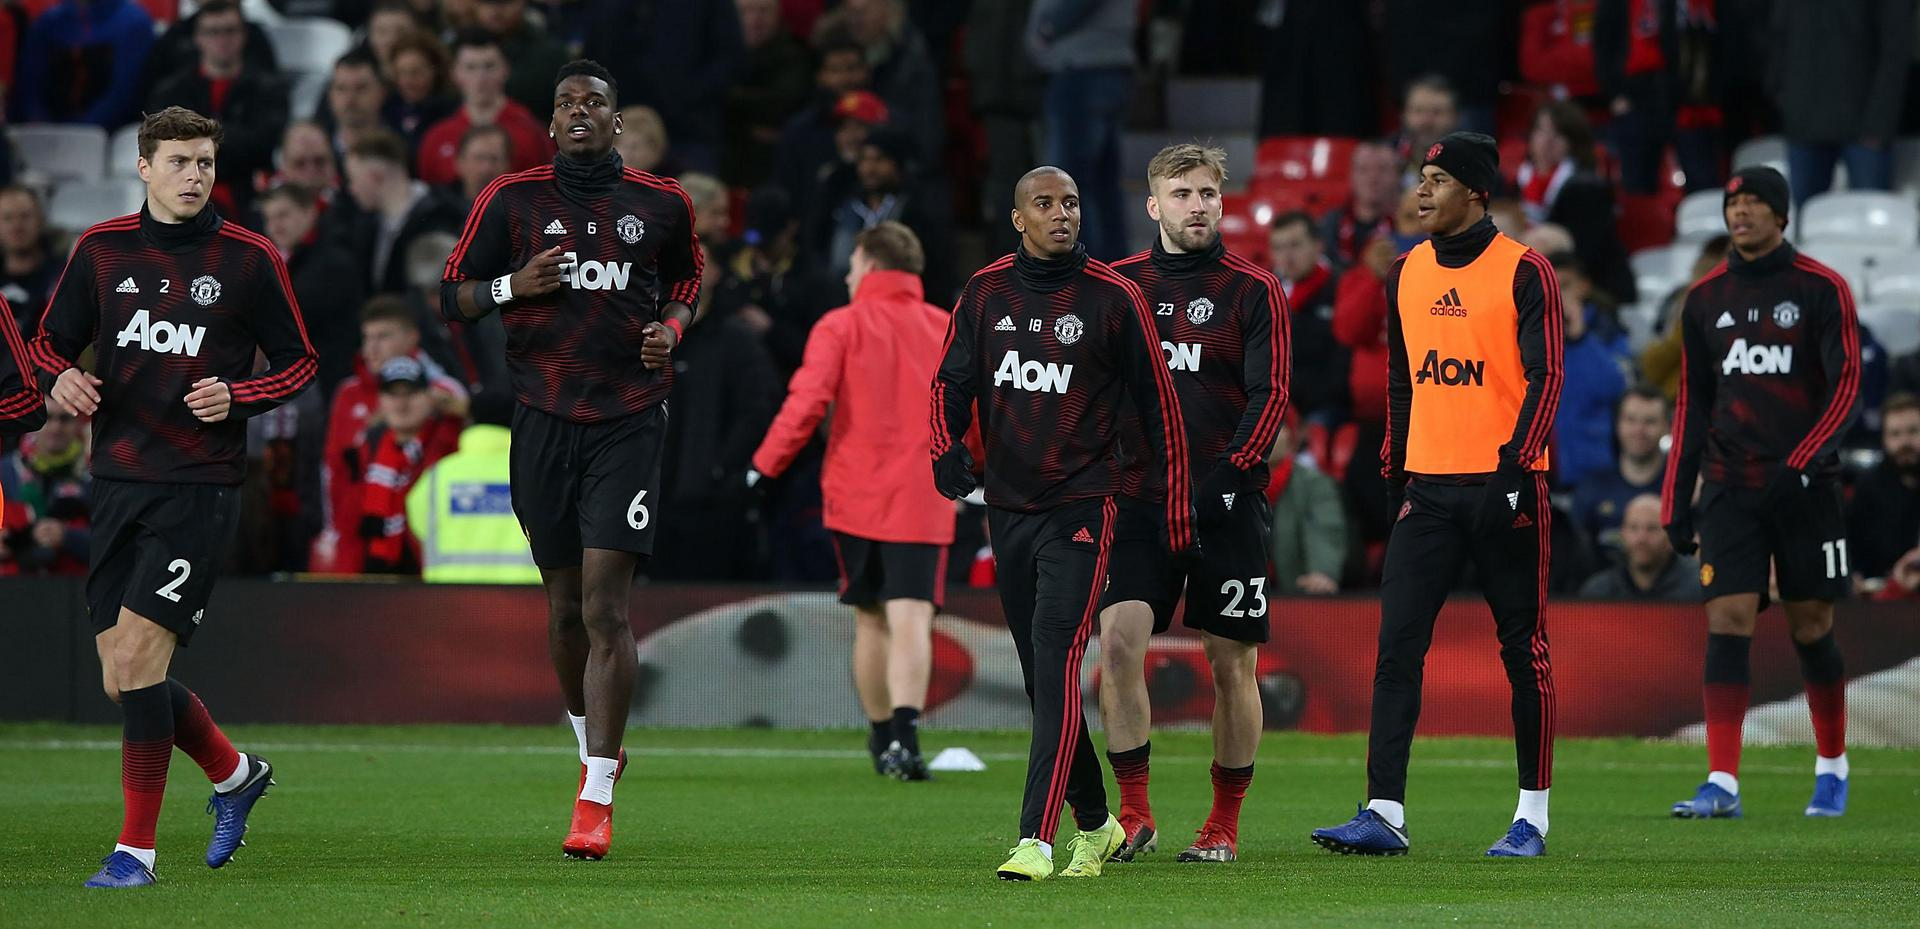 Manchester United players warm up before a match